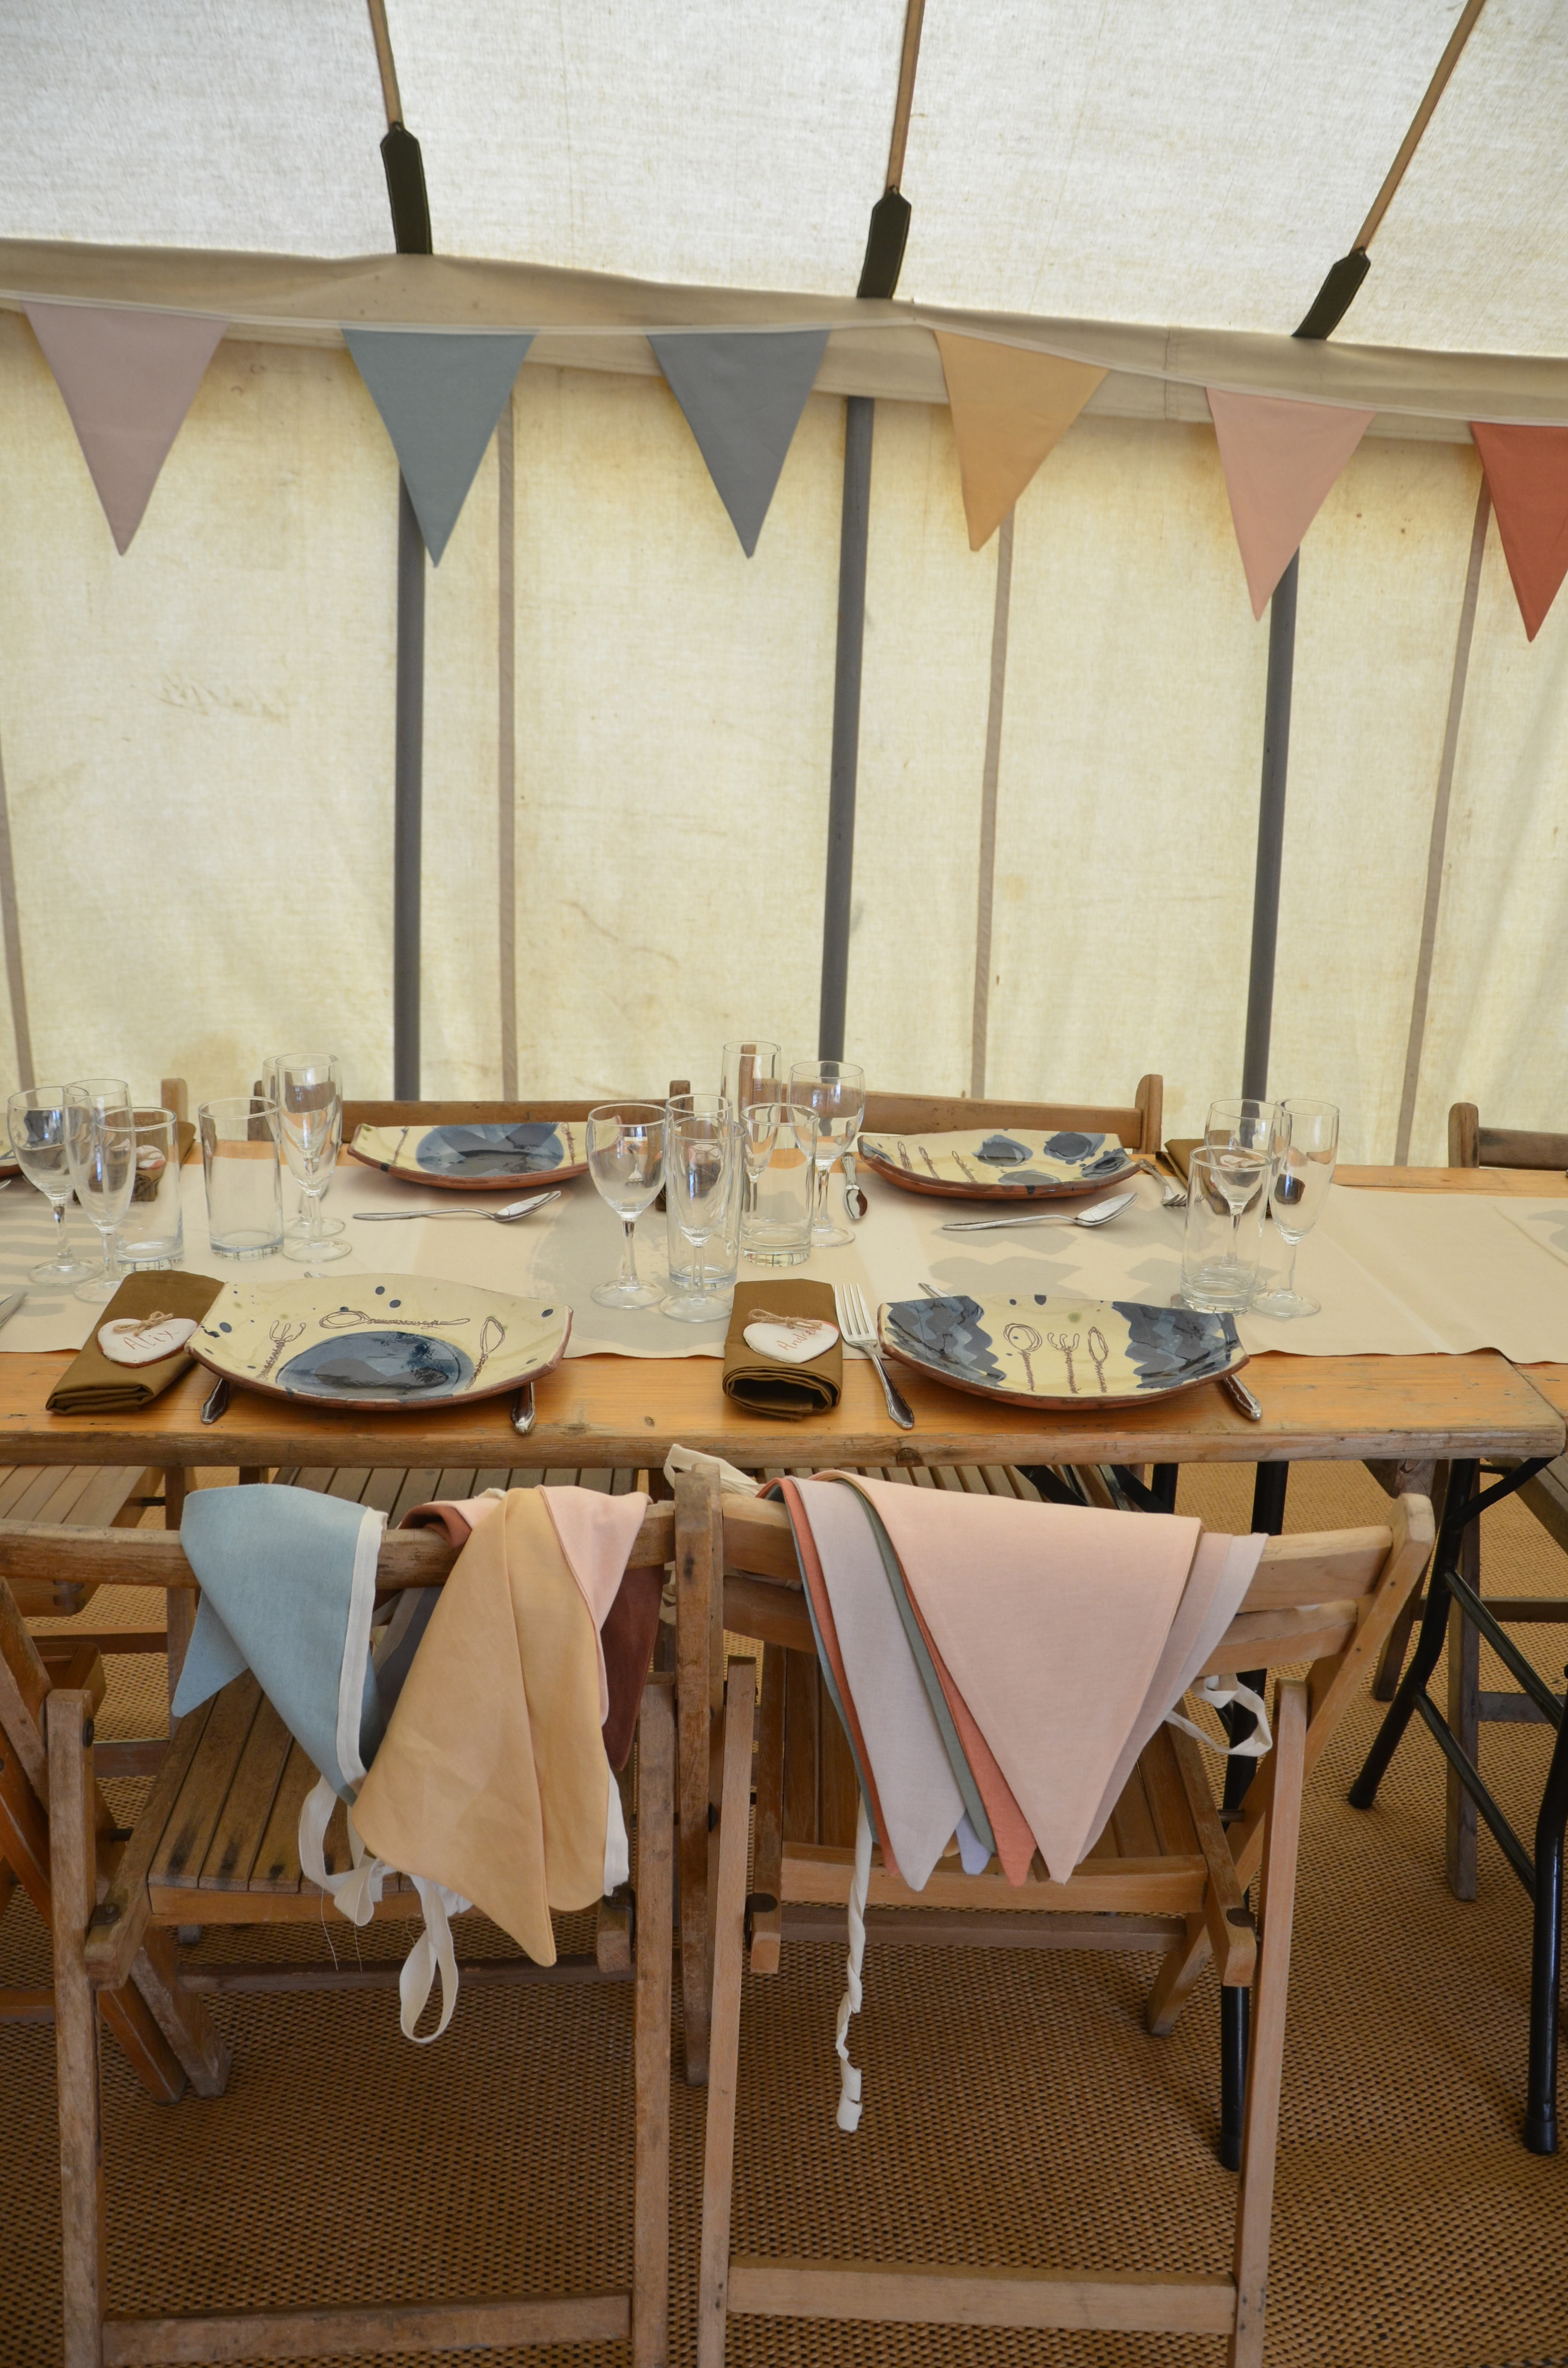 Tents and marquee – bunting – table and chairs